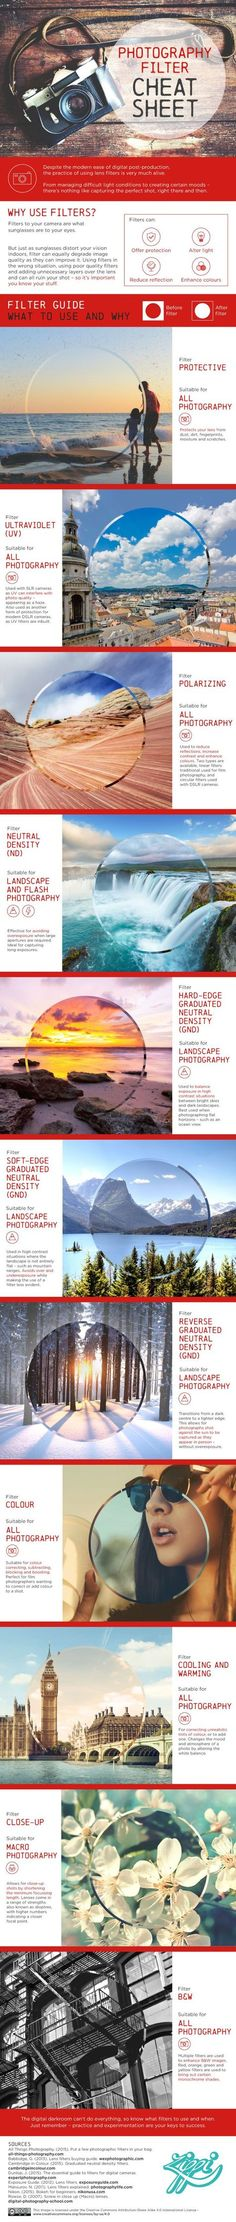 Photography Filters   A Guide for Where, When and How to Use Them [Infographic]